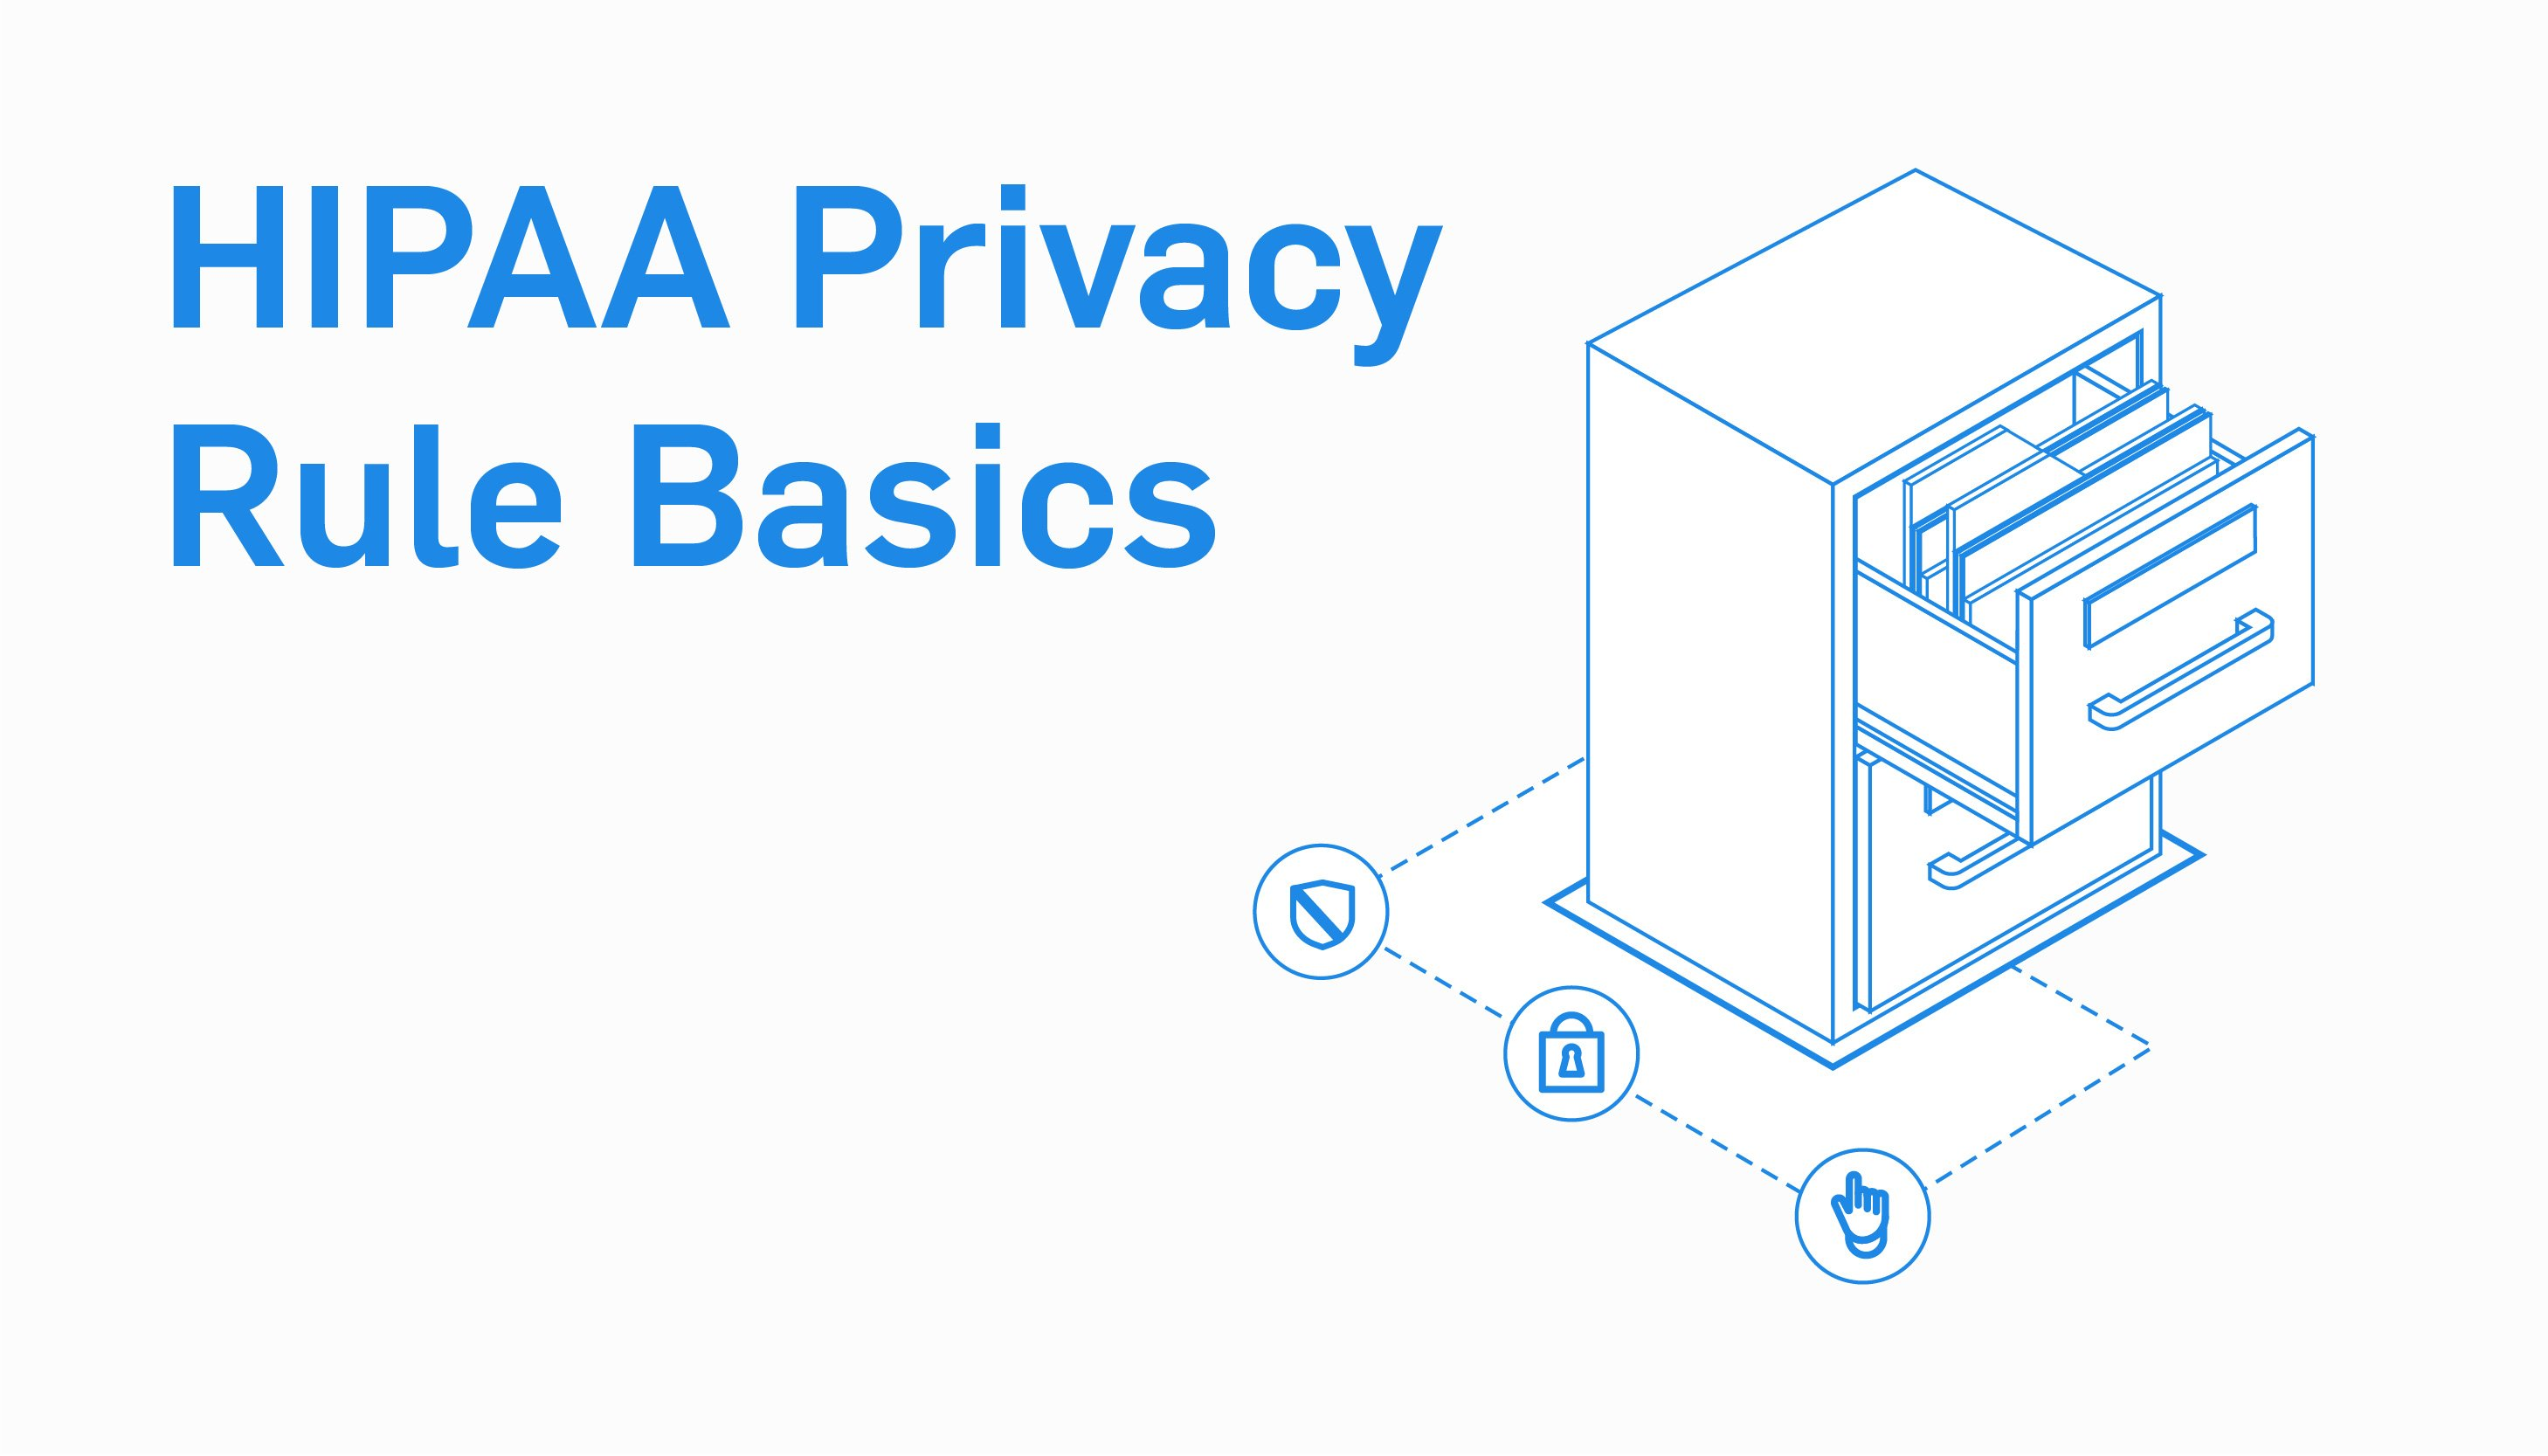 What is the HIPAA Privacy Rule?